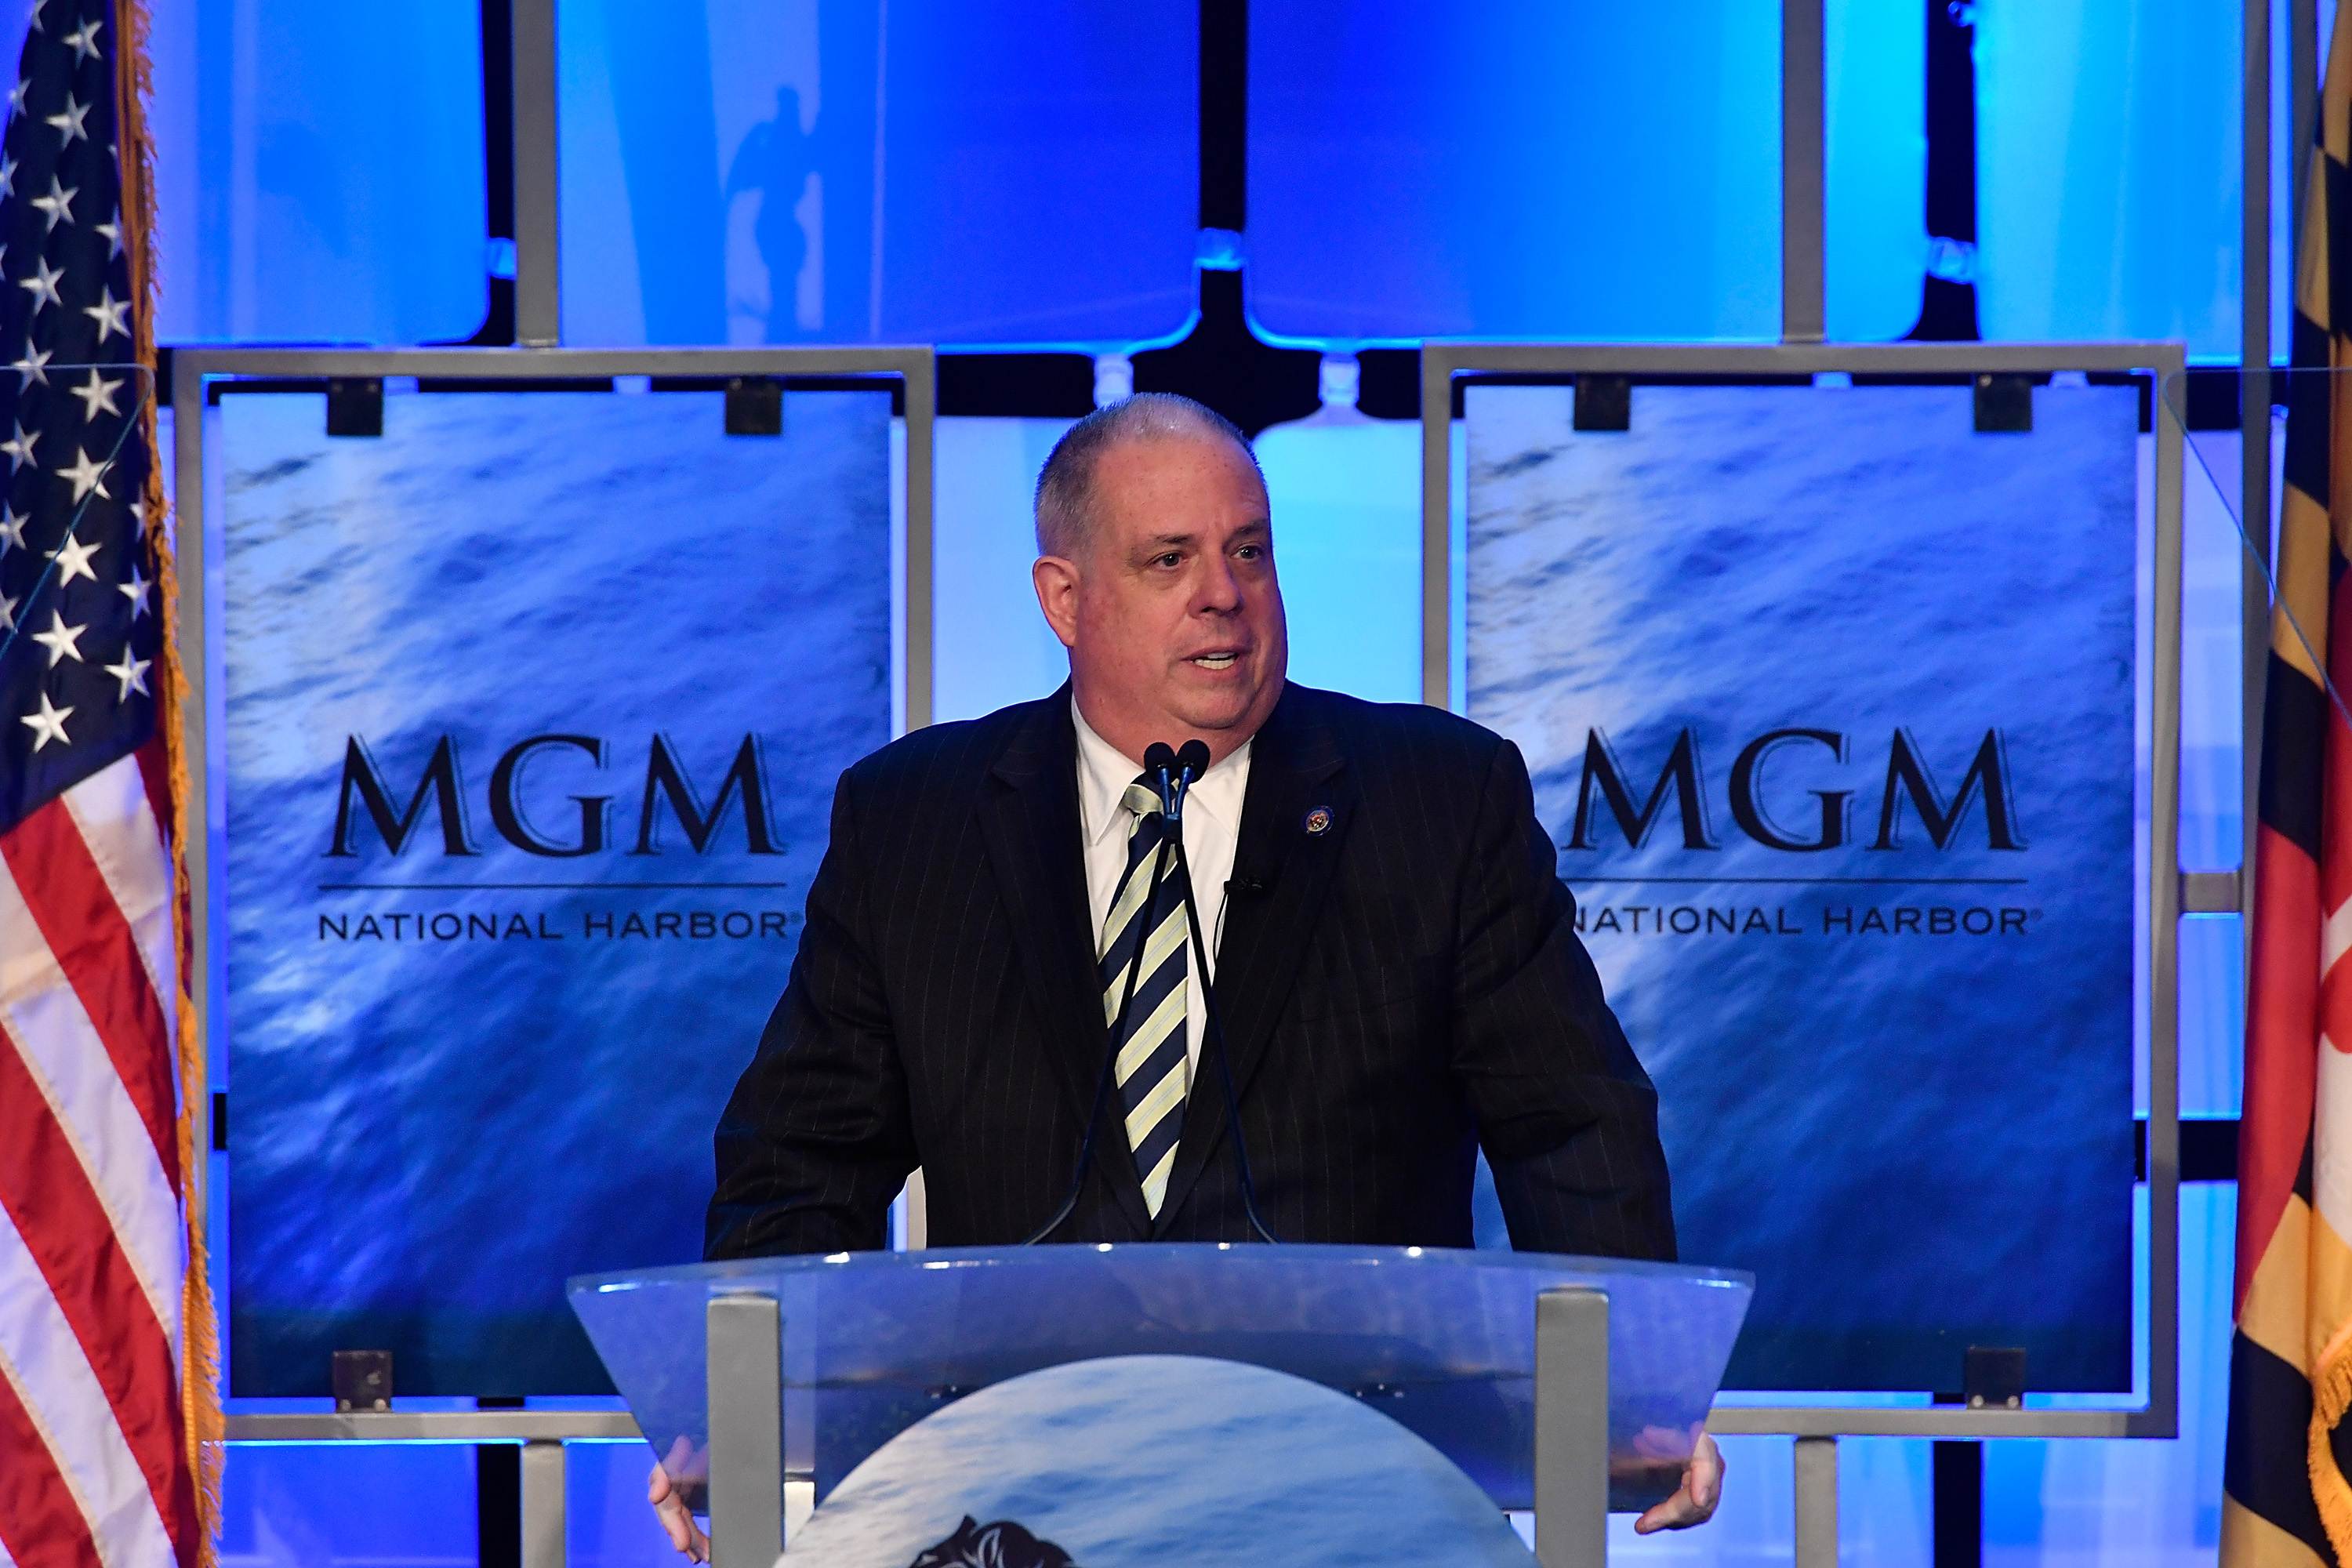 Maryland Gov. Larry Hogan in 2016